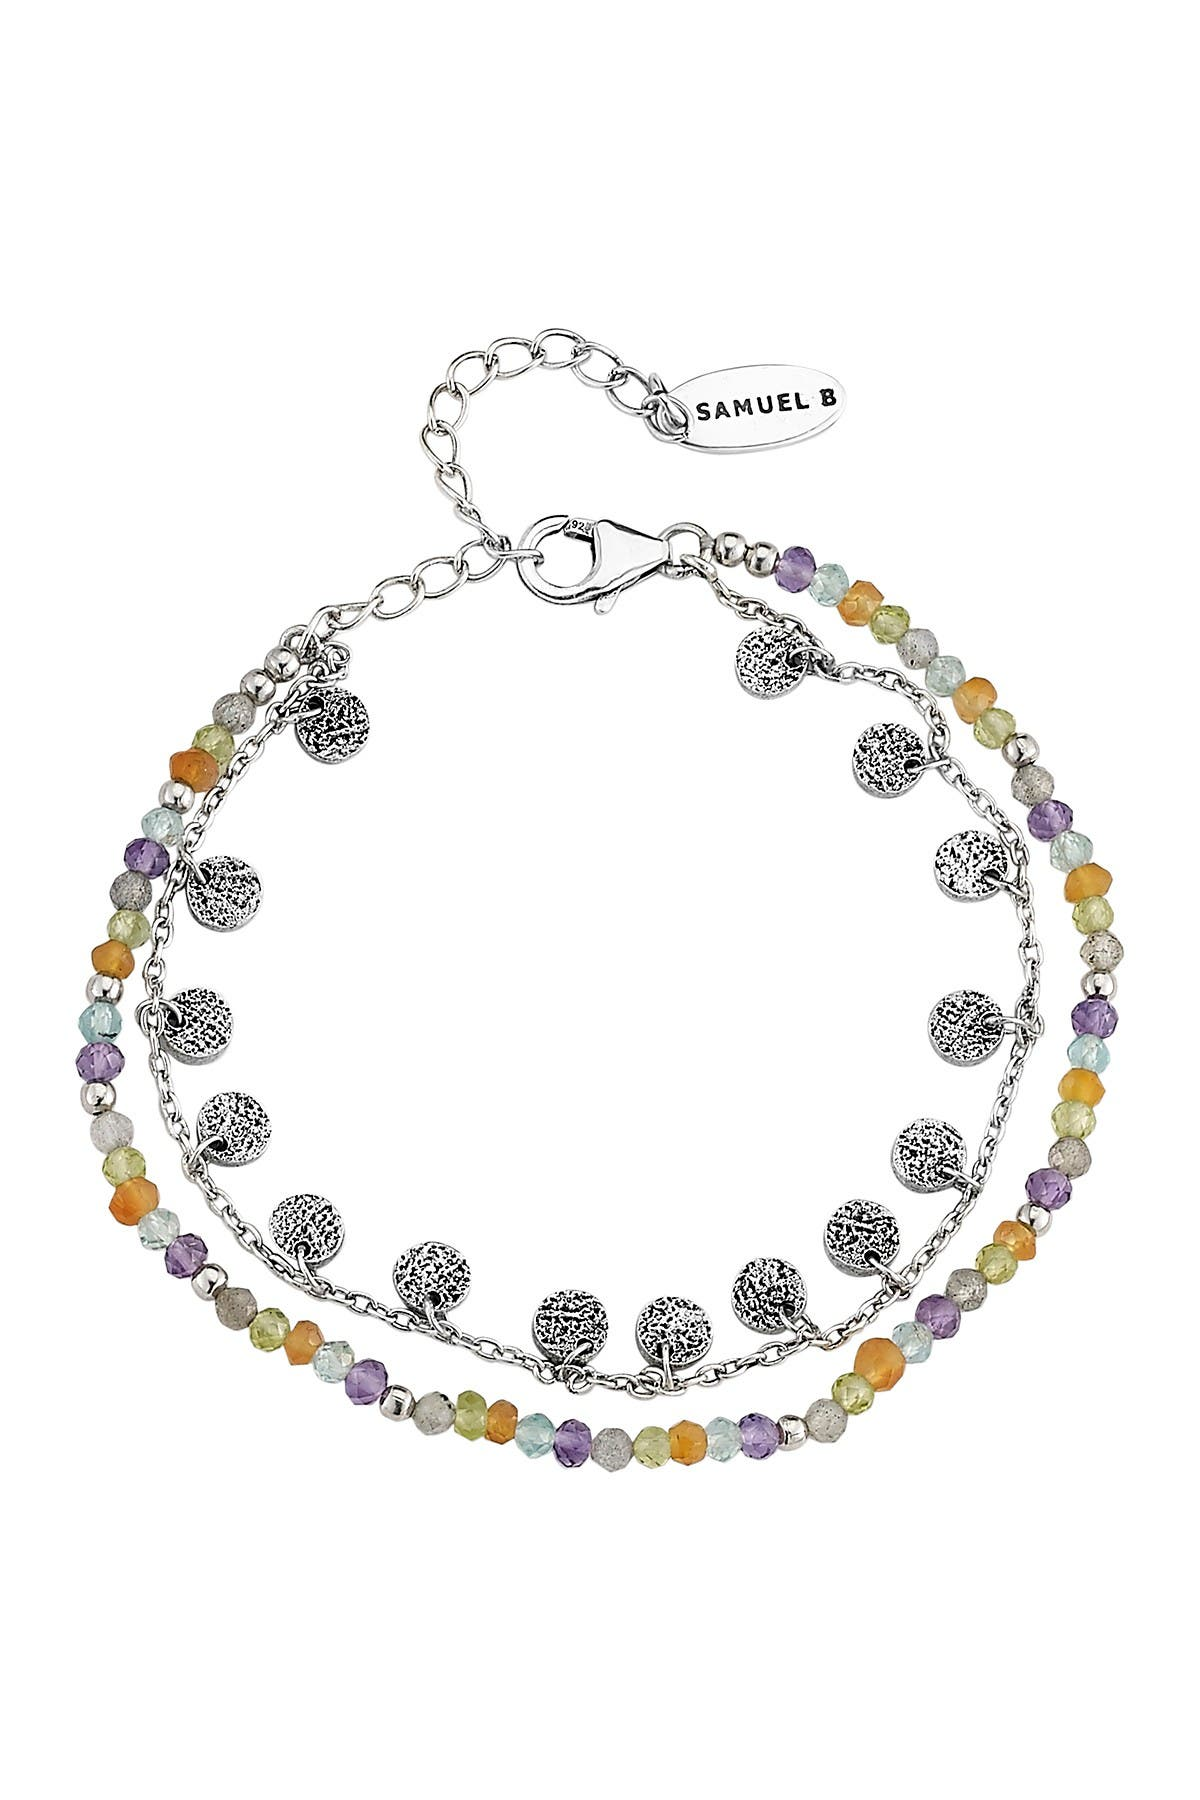 Image of Samuel B Jewelry Sterling Silver Beaded Layered Necklace